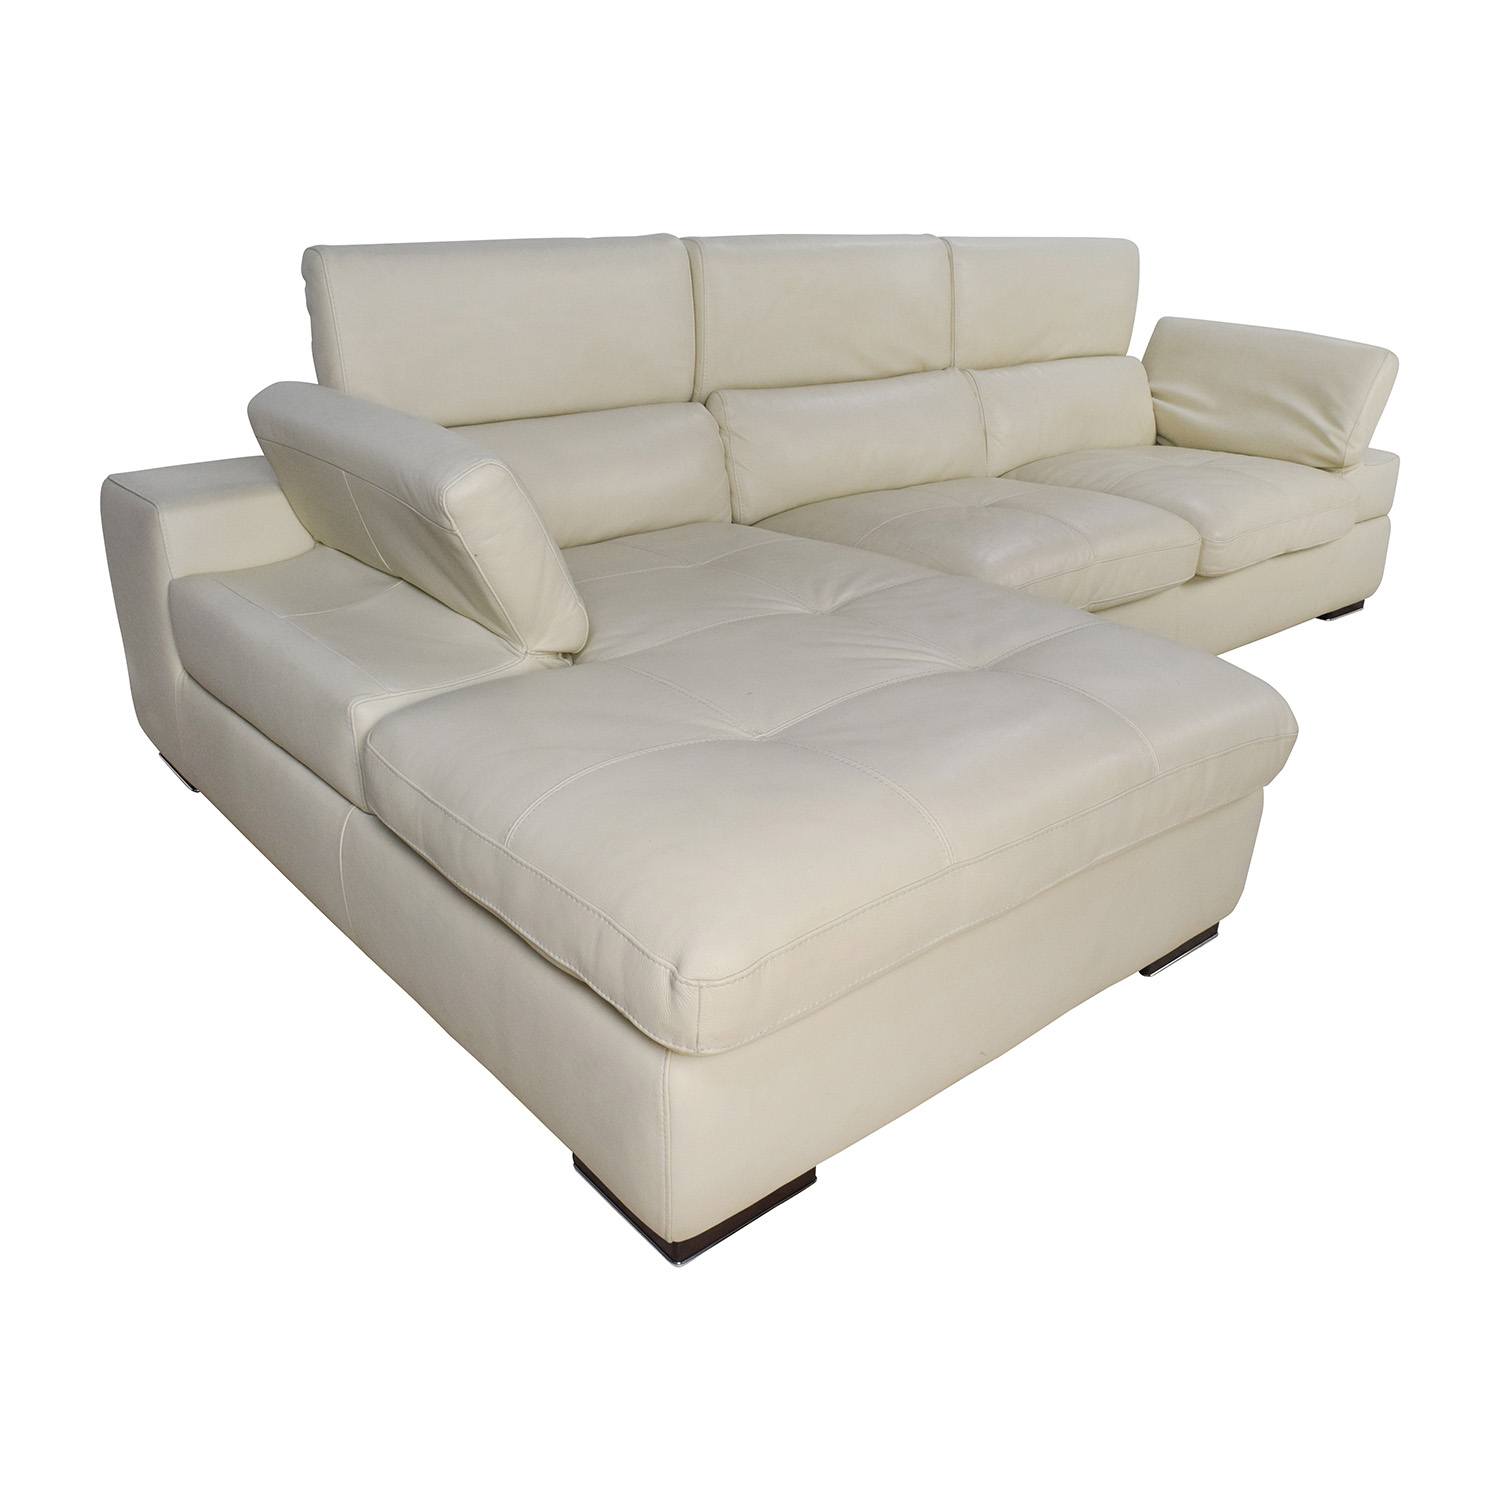 69 off l shaped cream leather sectional sofa sofas for Sofas